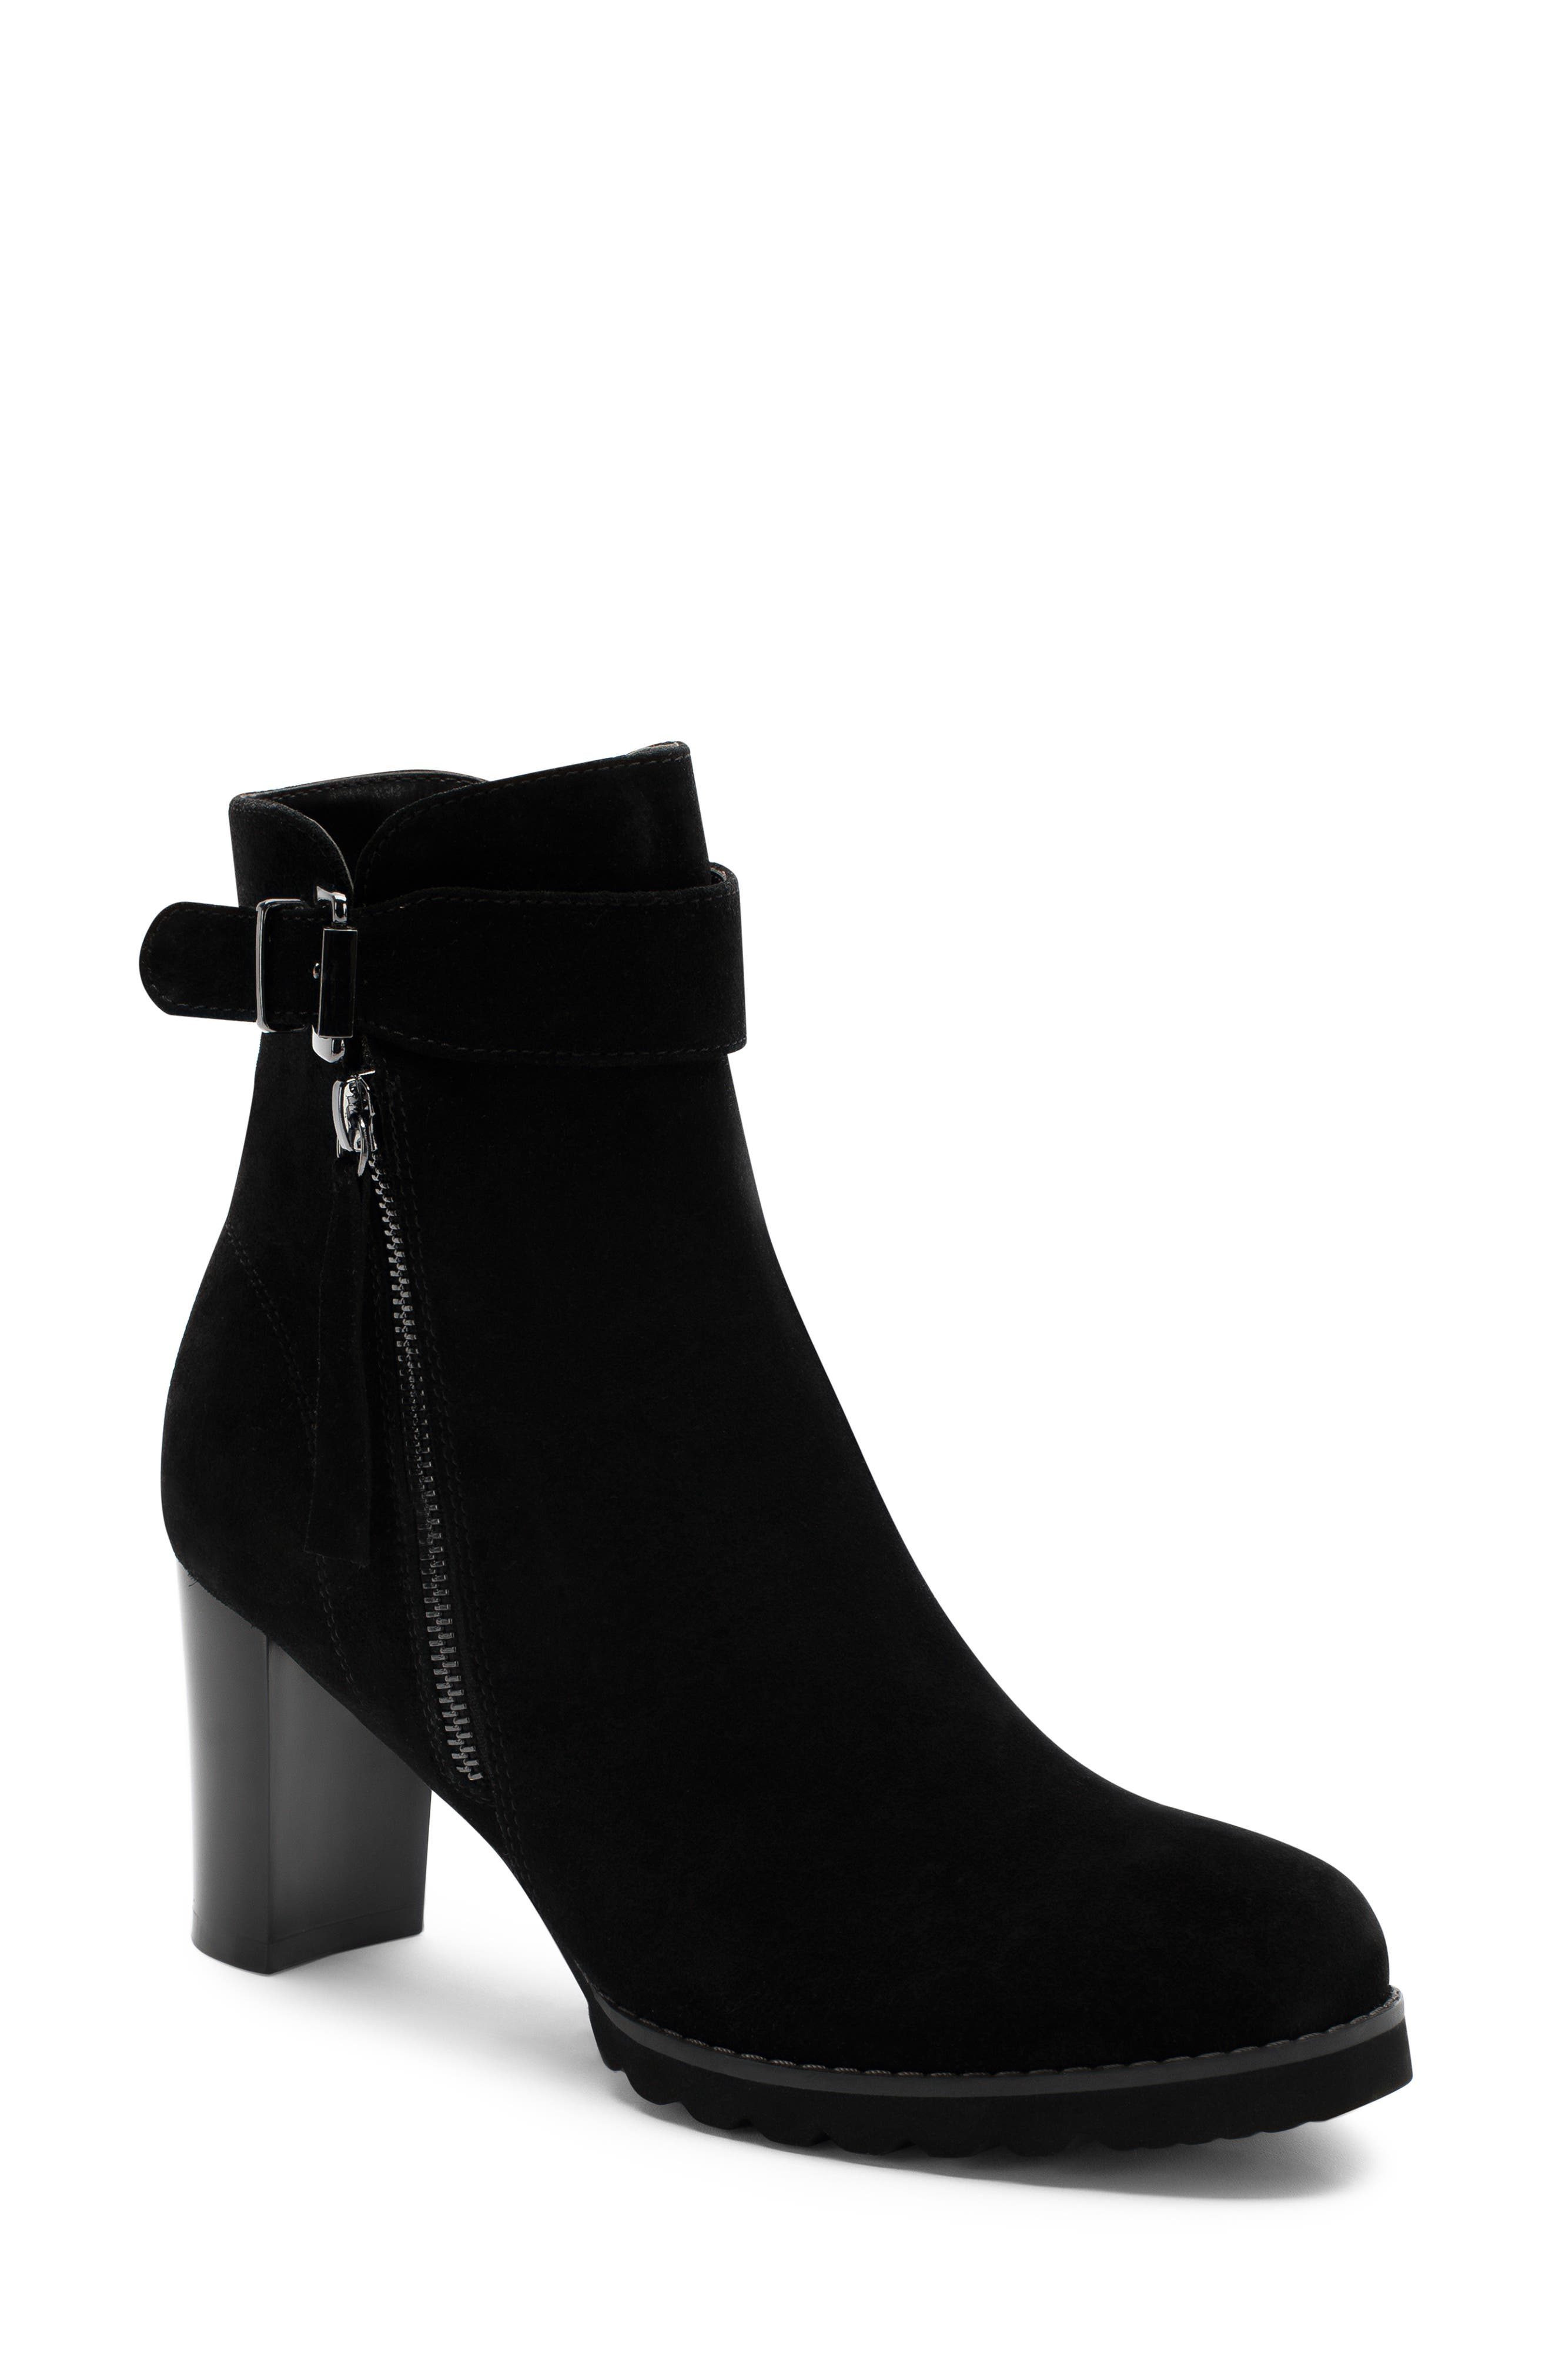 Anic Waterproof Ankle Boot,                         Main,                         color, BLACK SUEDE